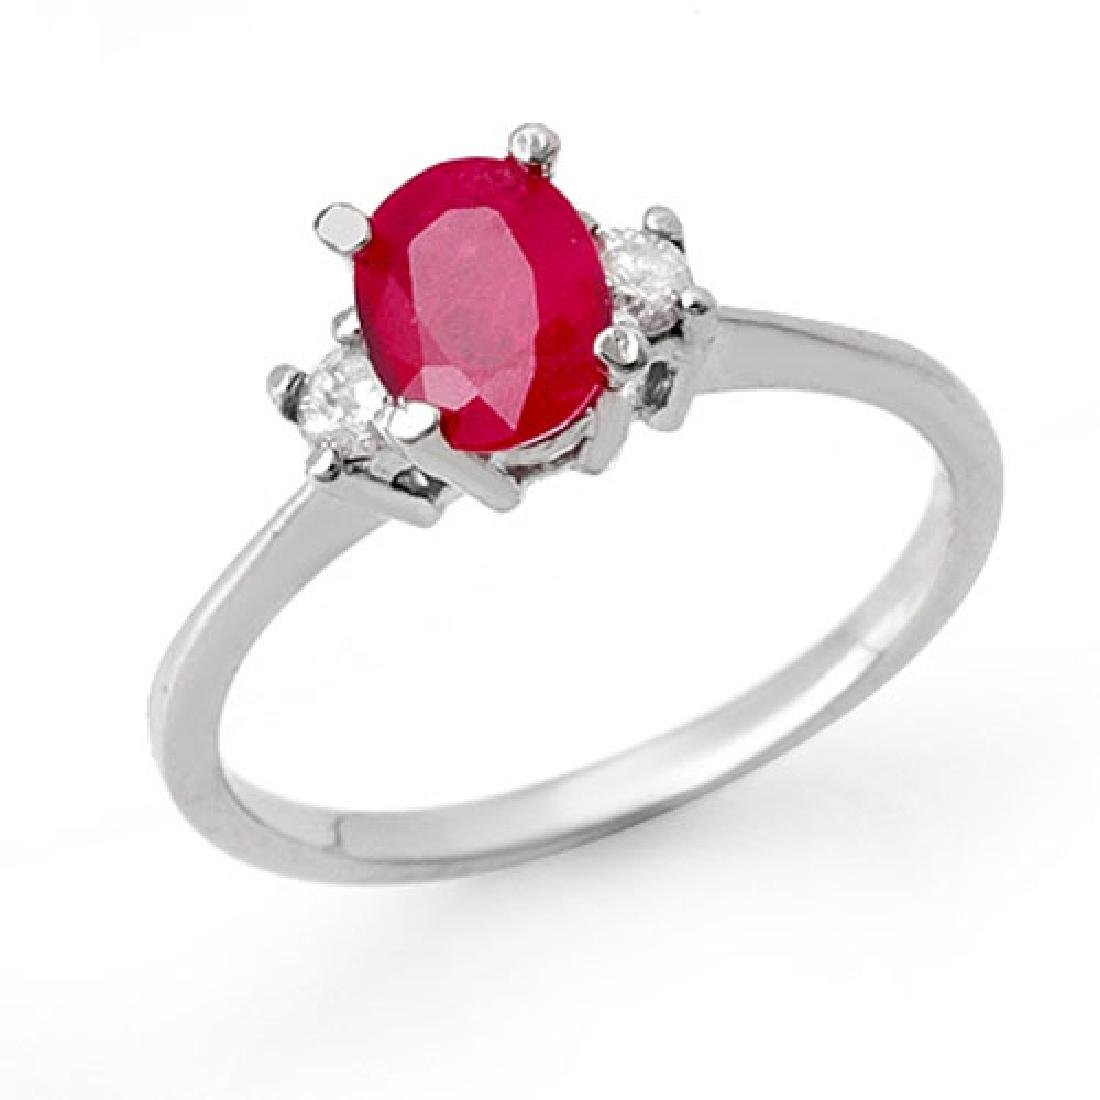 1.36 CTW Ruby & Diamond Ring 10K White Gold